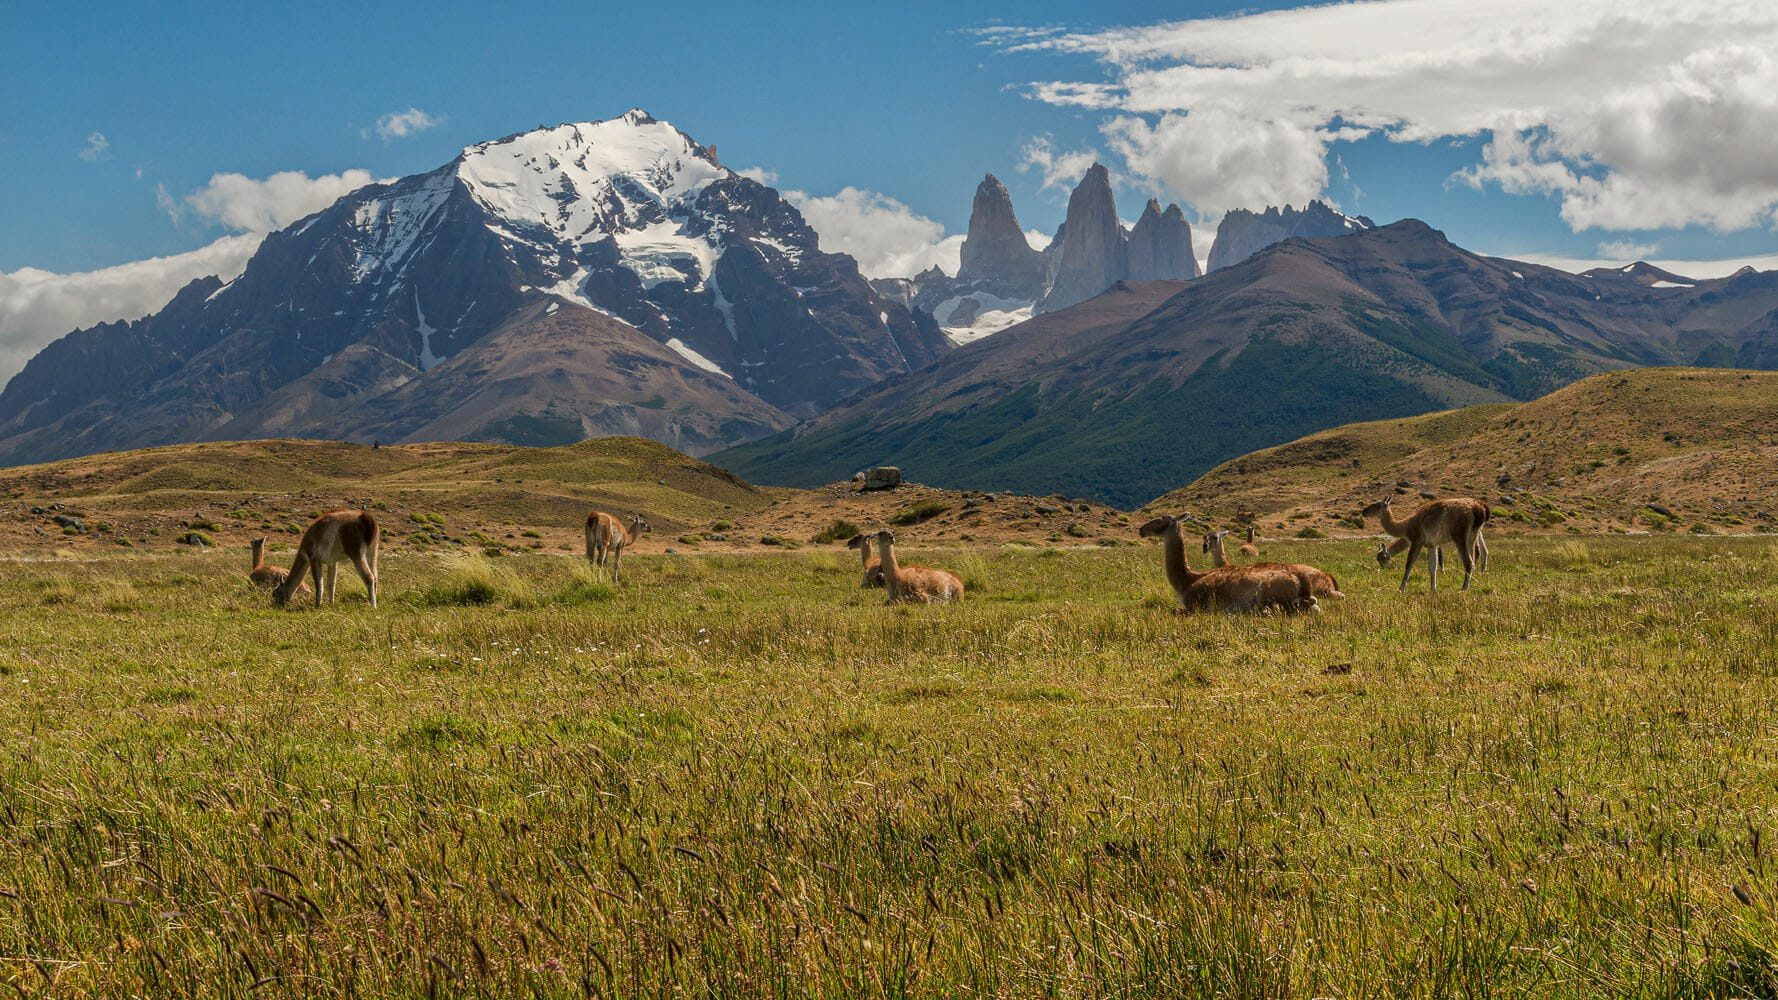 Wide shot of herd of Guanacos at the foot of the Torres del Paine mountain range